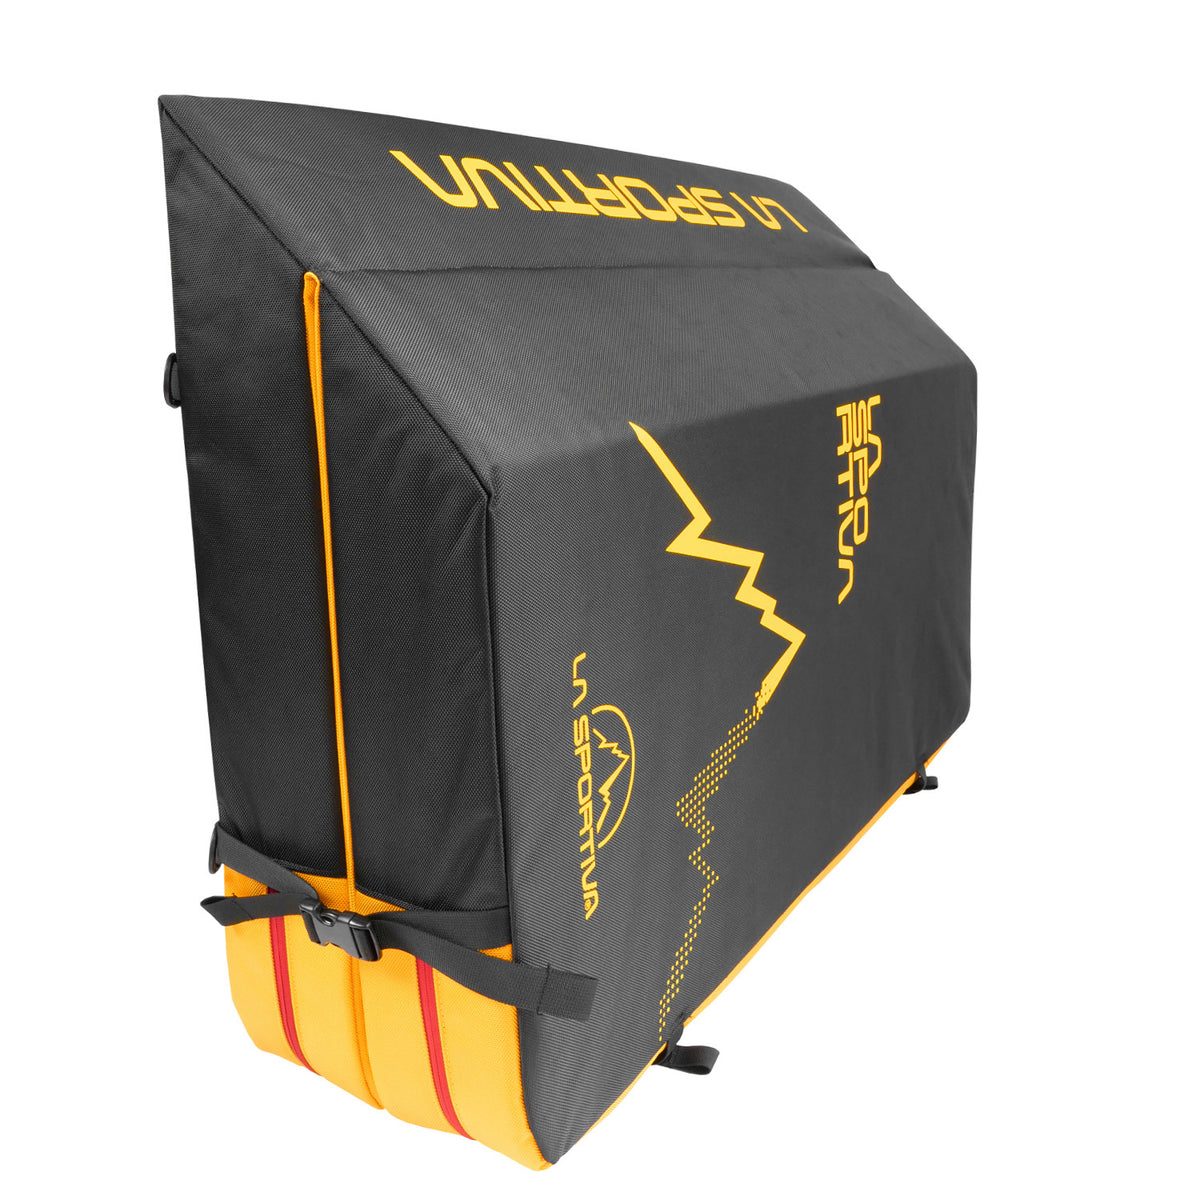 La Sportiva LaSpo Crash Pad Showing 45* degree cut rear of the pad in Black, Yellow and Red